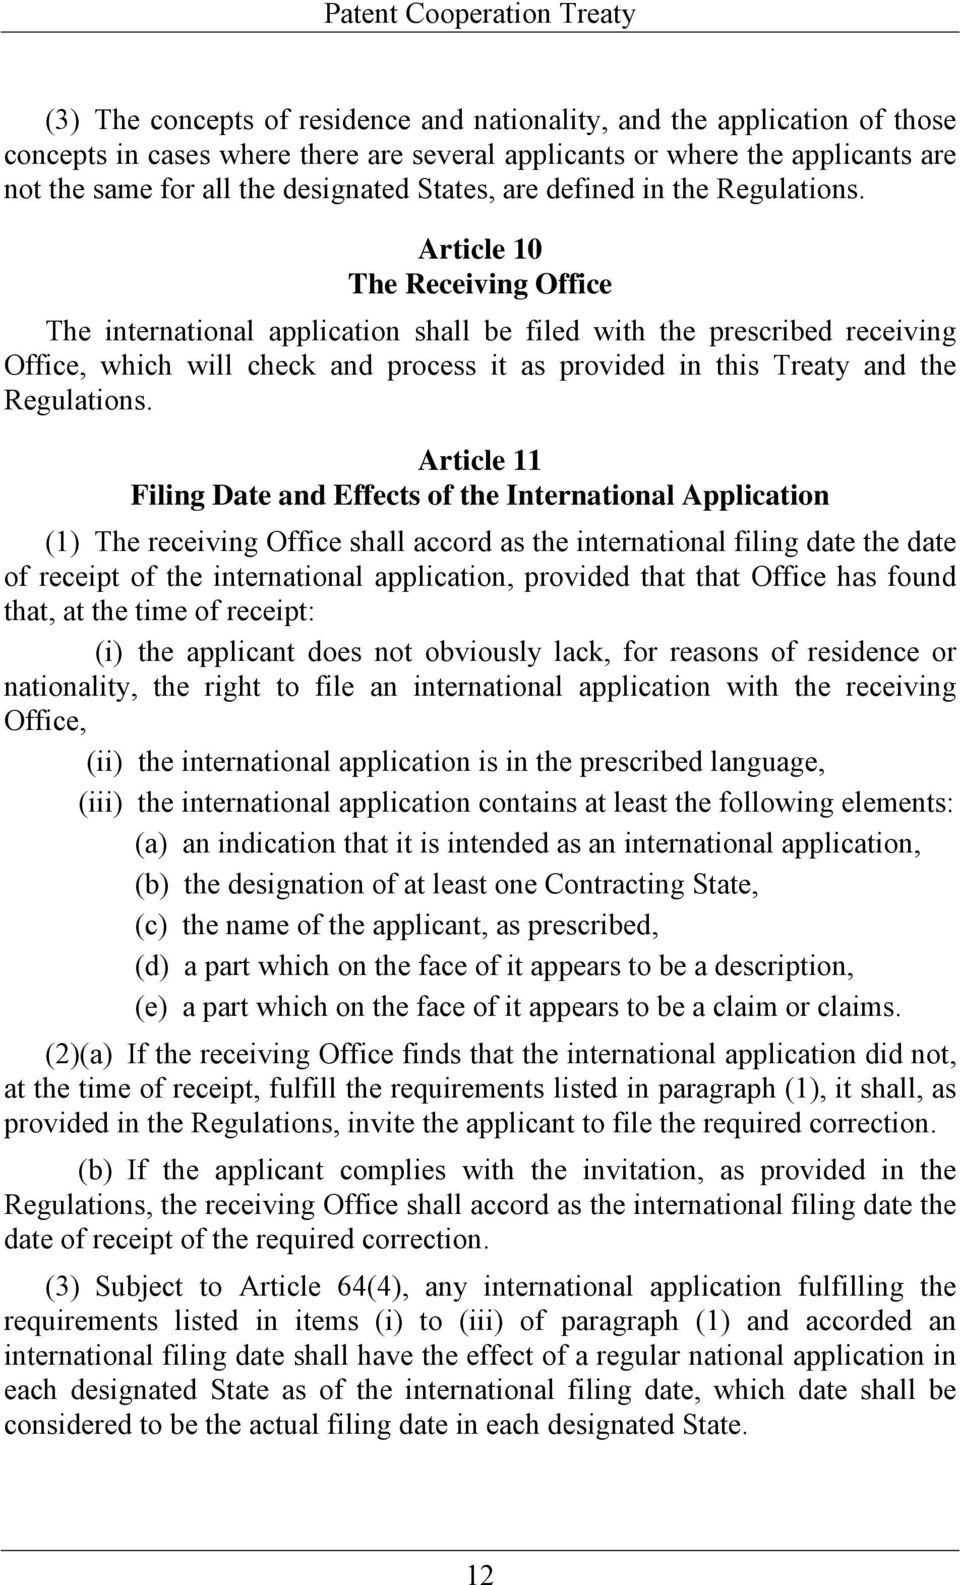 Article 10 The Receiving Office The international application shall be filed with the prescribed receiving Office, which will check and process it as provided in this Treaty and the Regulations.